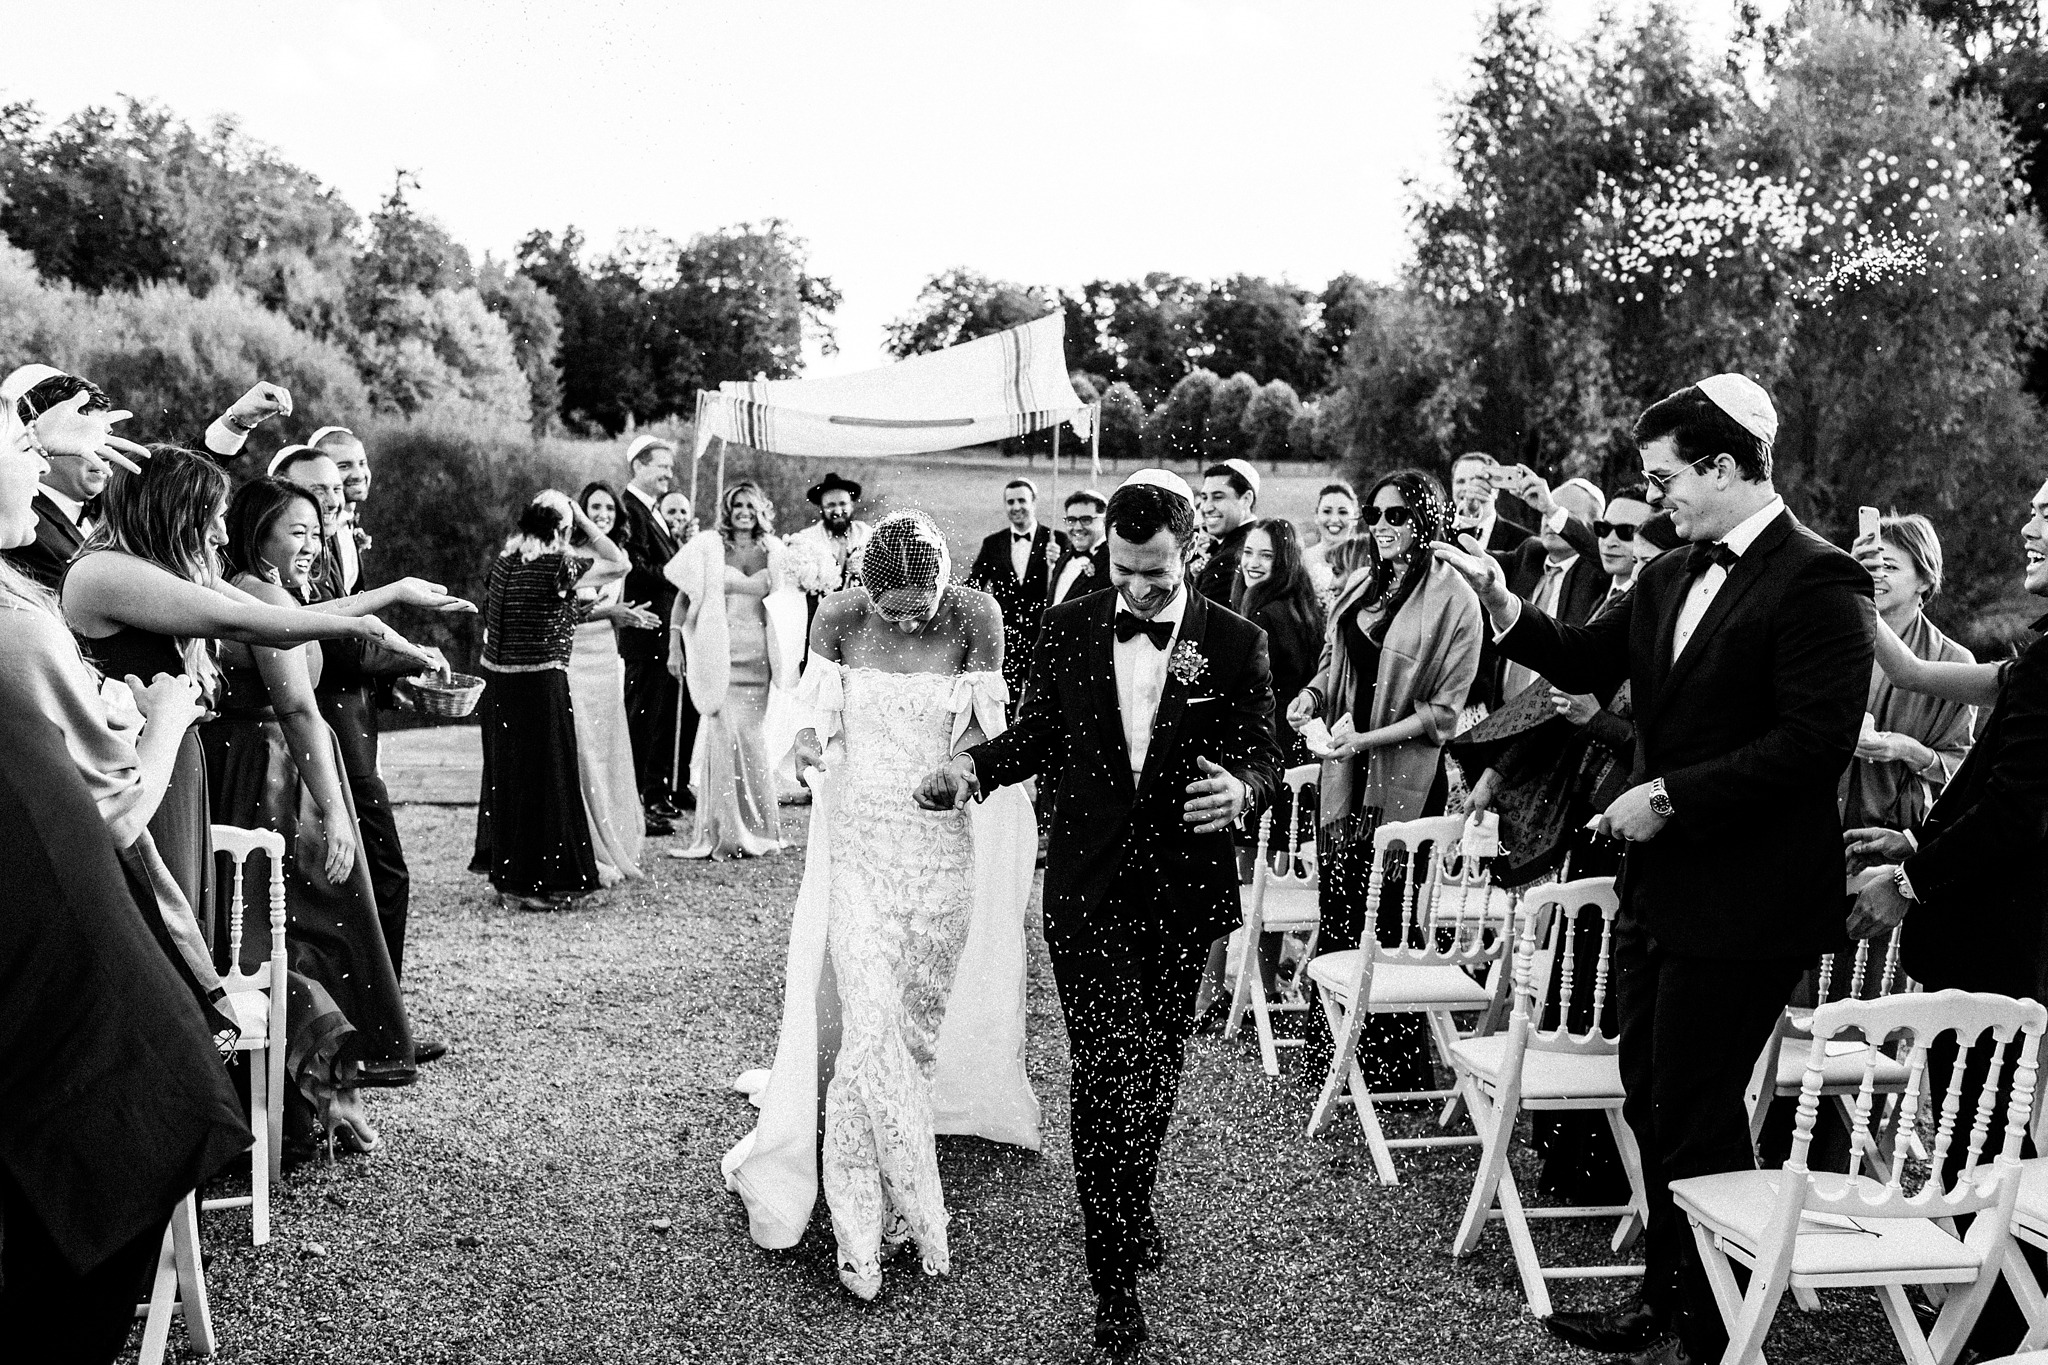 chateau-wedding-france-chanel-eric-as-seen-on-vogue-with-sarah-falugo-photographer_0100